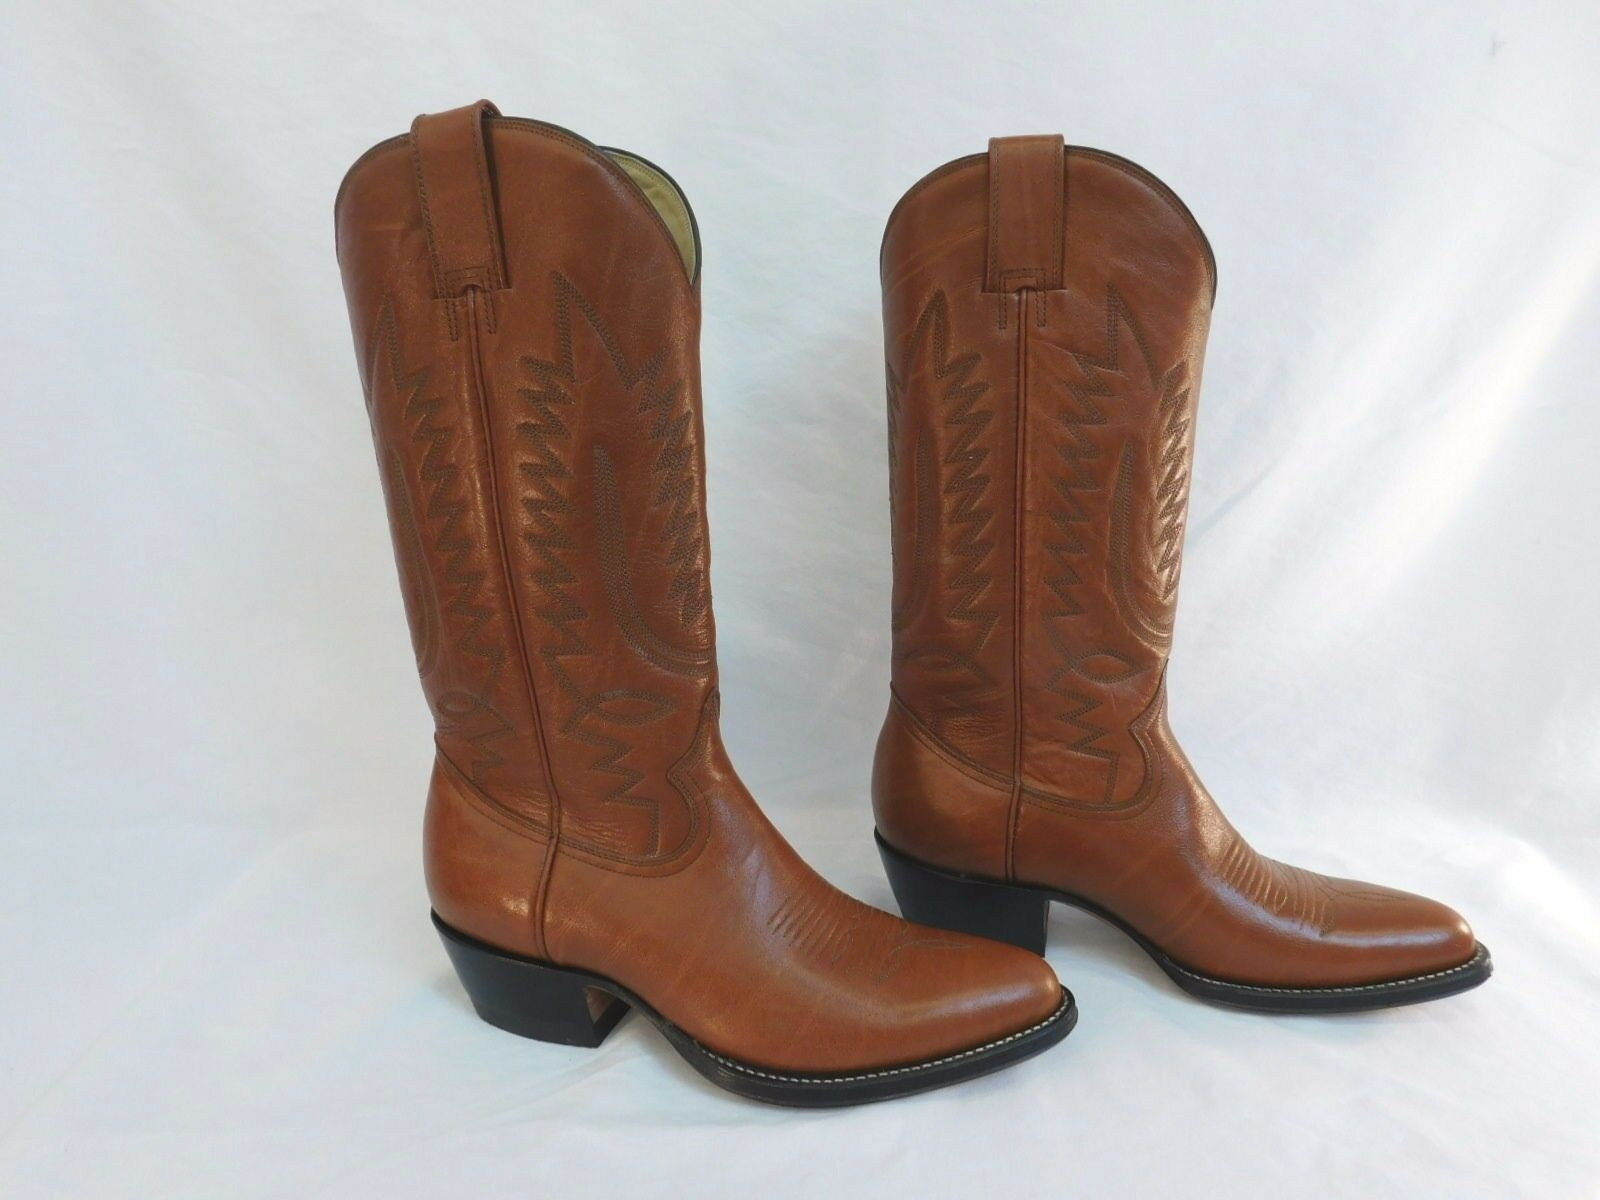 MONTANA BROWN COWBOY BOOTS LEATHER SIZE 7-1 2 NEW IN BOX M207 CLASSIC